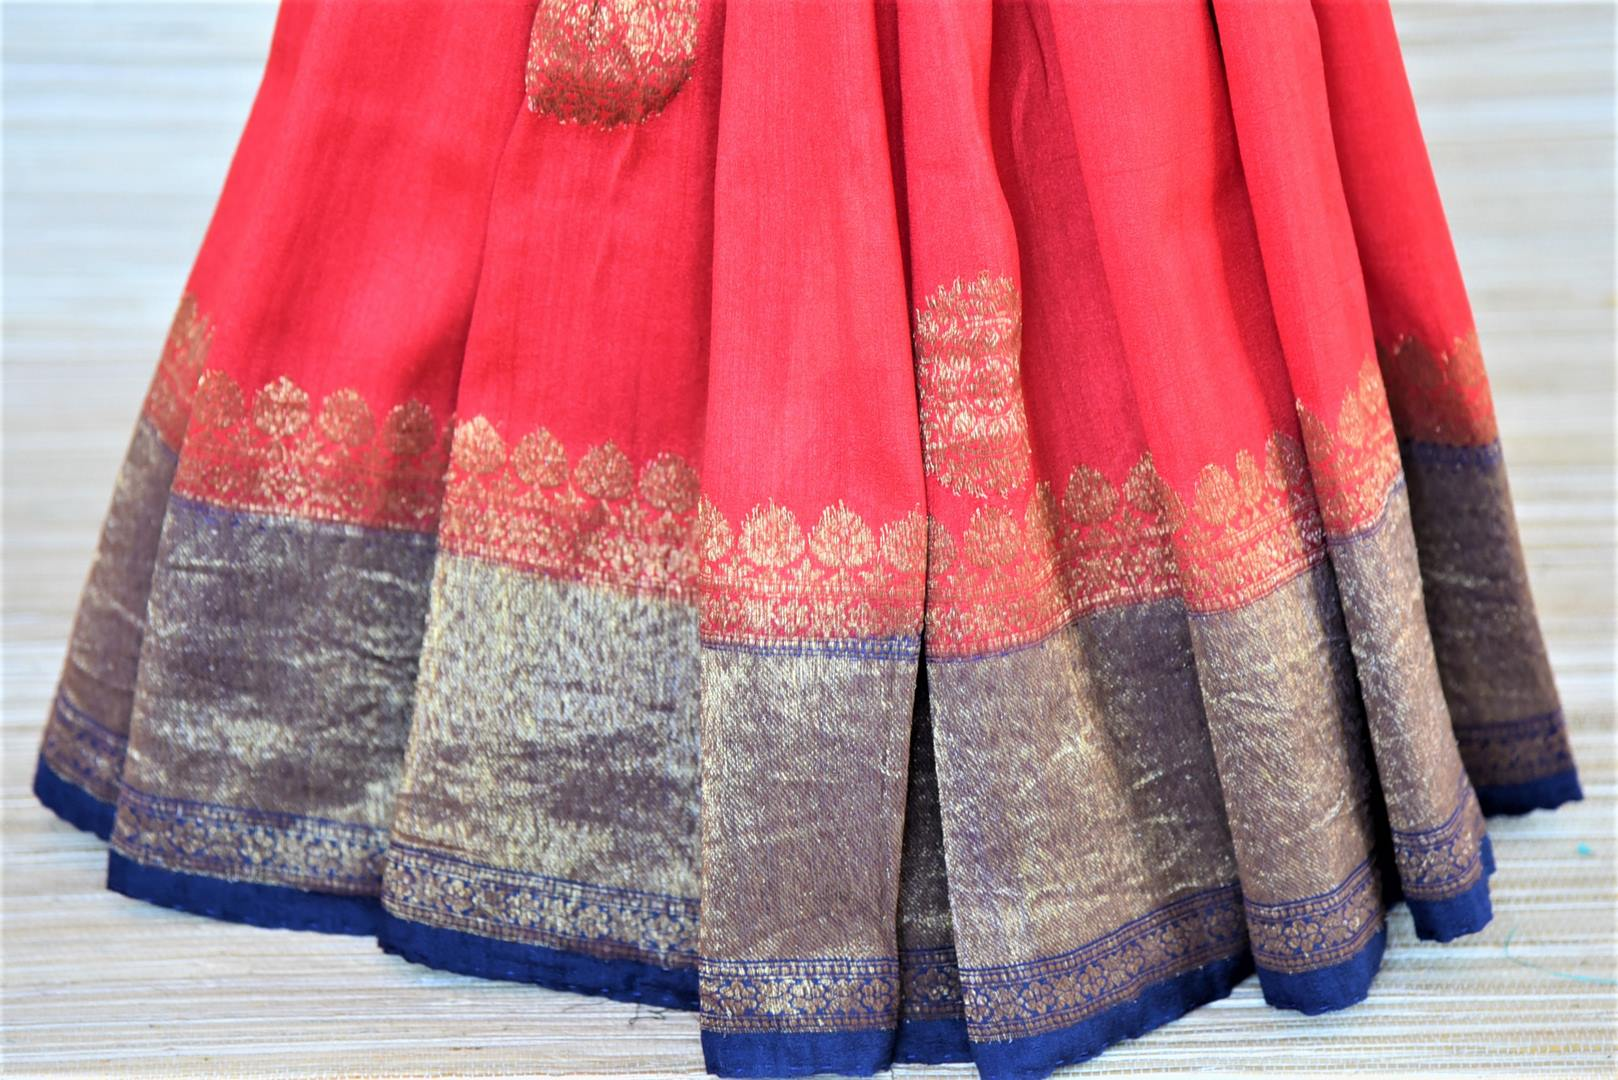 Buy red tussar Banarsi saree online in USA with blue antique zari border. Wear designer sarees, Banarasi sarees, handwoven tussar sarees on special occasions from Pure Elegance Indian clothing store in USA. -pleats